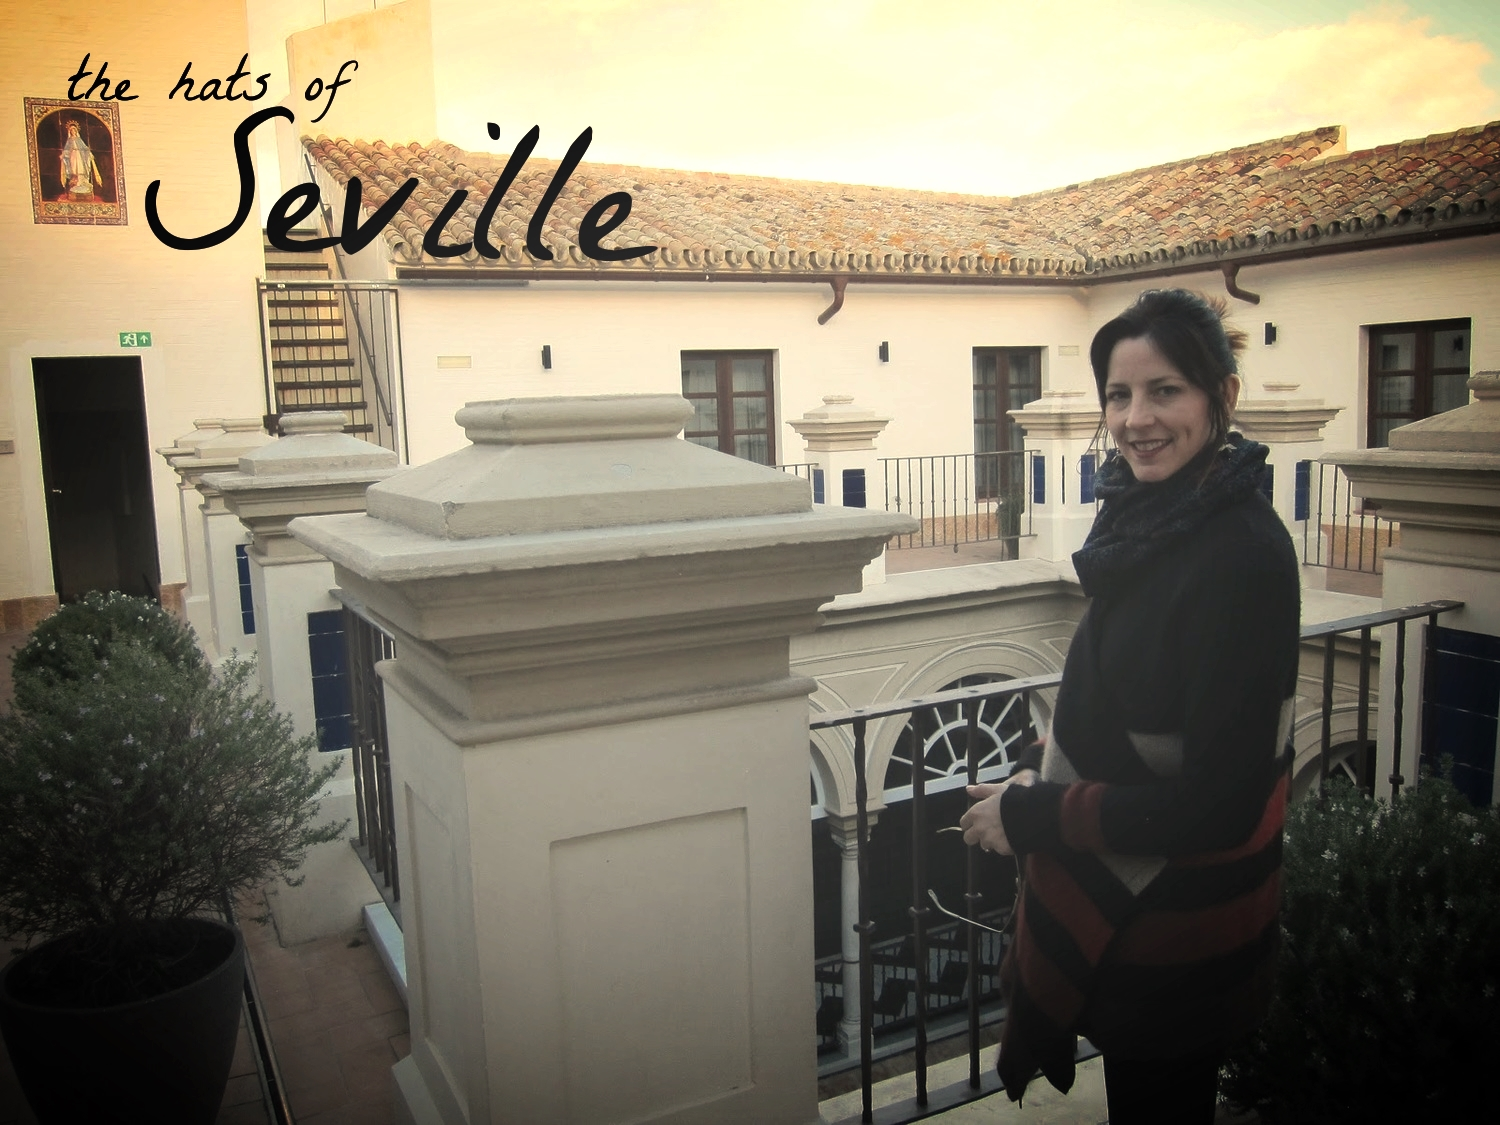 Enjoying a break in Seville, Spain